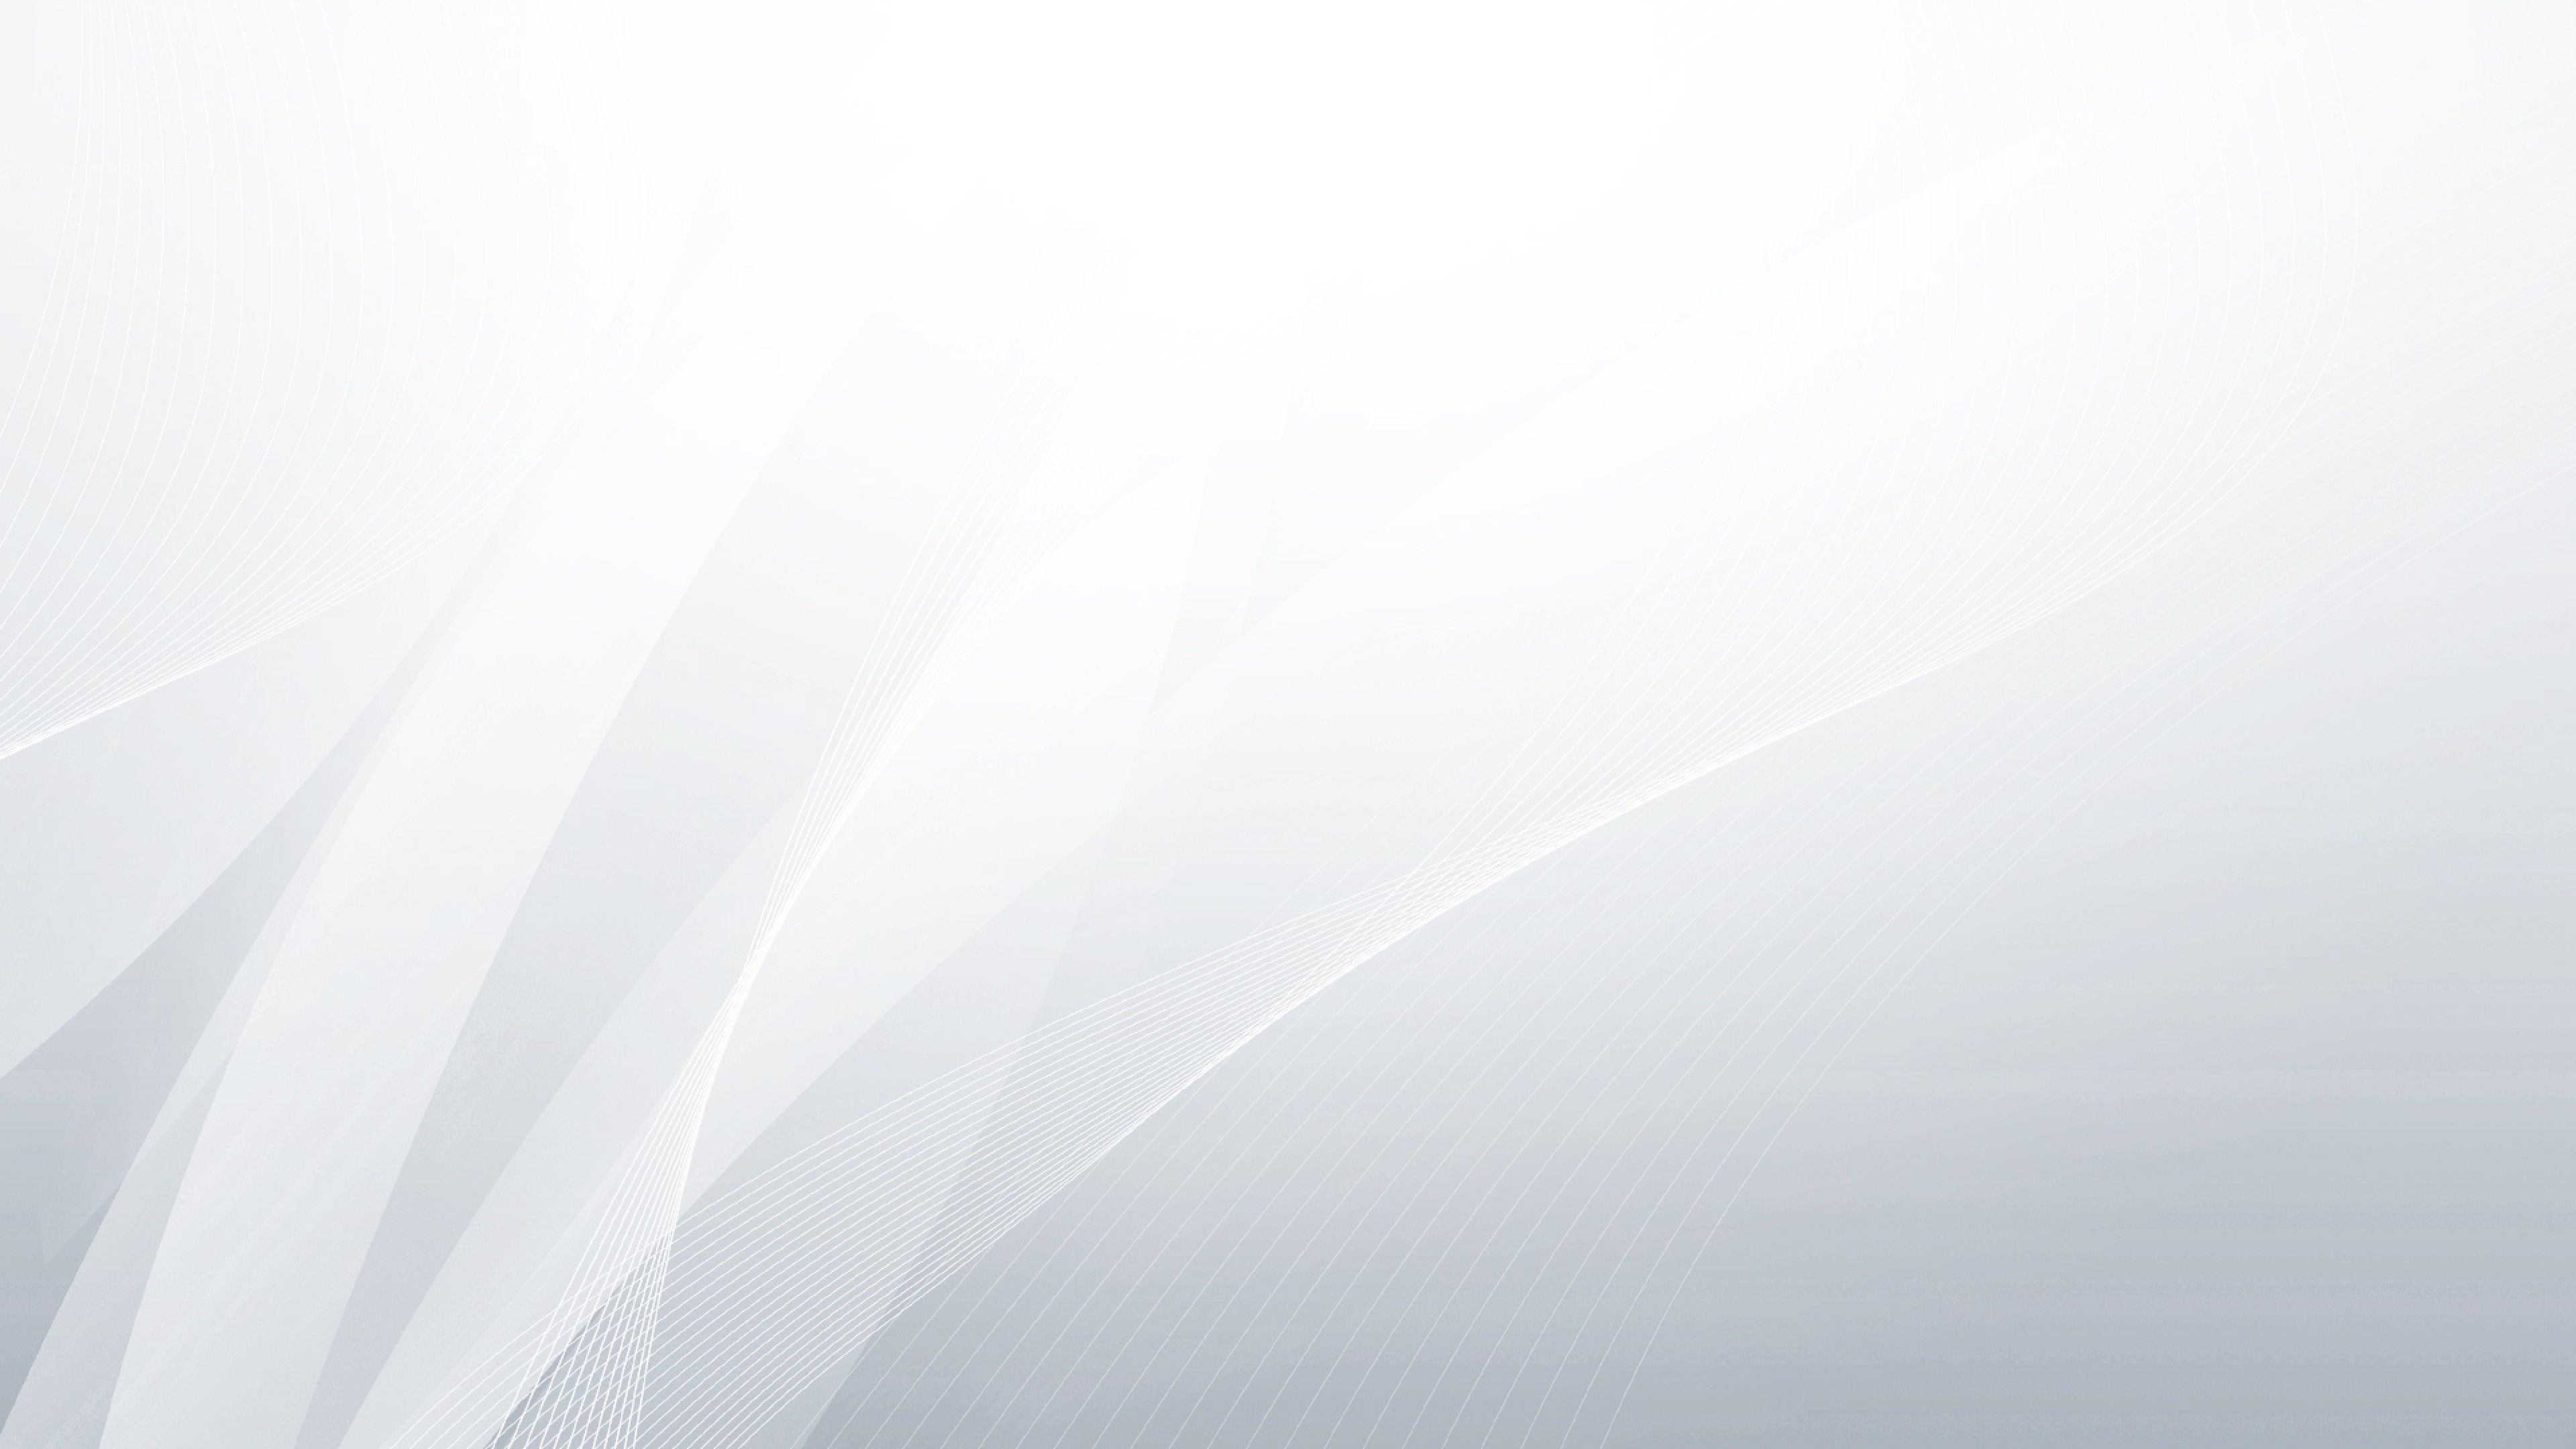 3840x2160 Download 3840x2160 Minimalistic, Waves, White, Gradient Wallpapers ...